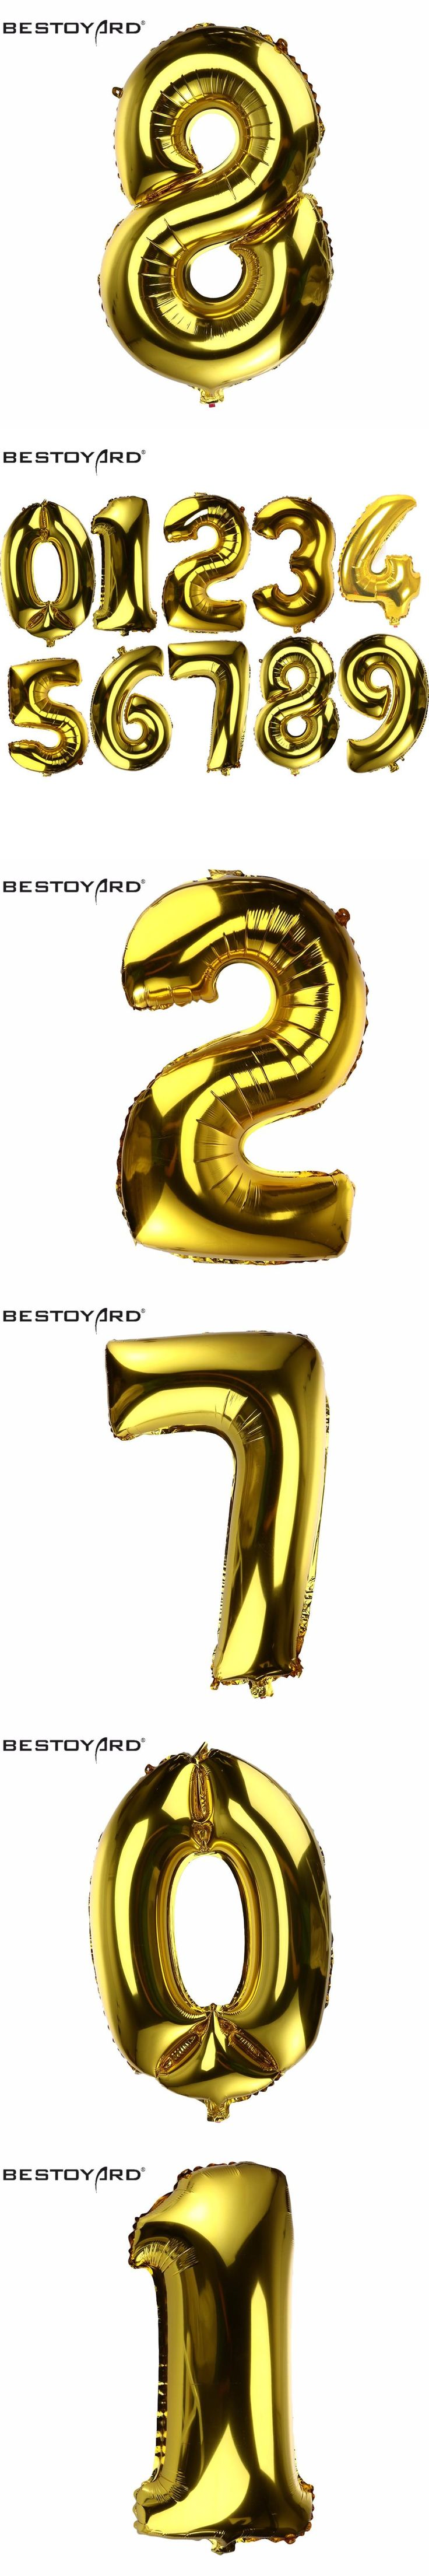 32 Inch 0-9 Number Aluminum Foil Gold Balloon Big Size Helium Balloons Birthday Wedding Party Decoration Celebration Supplies